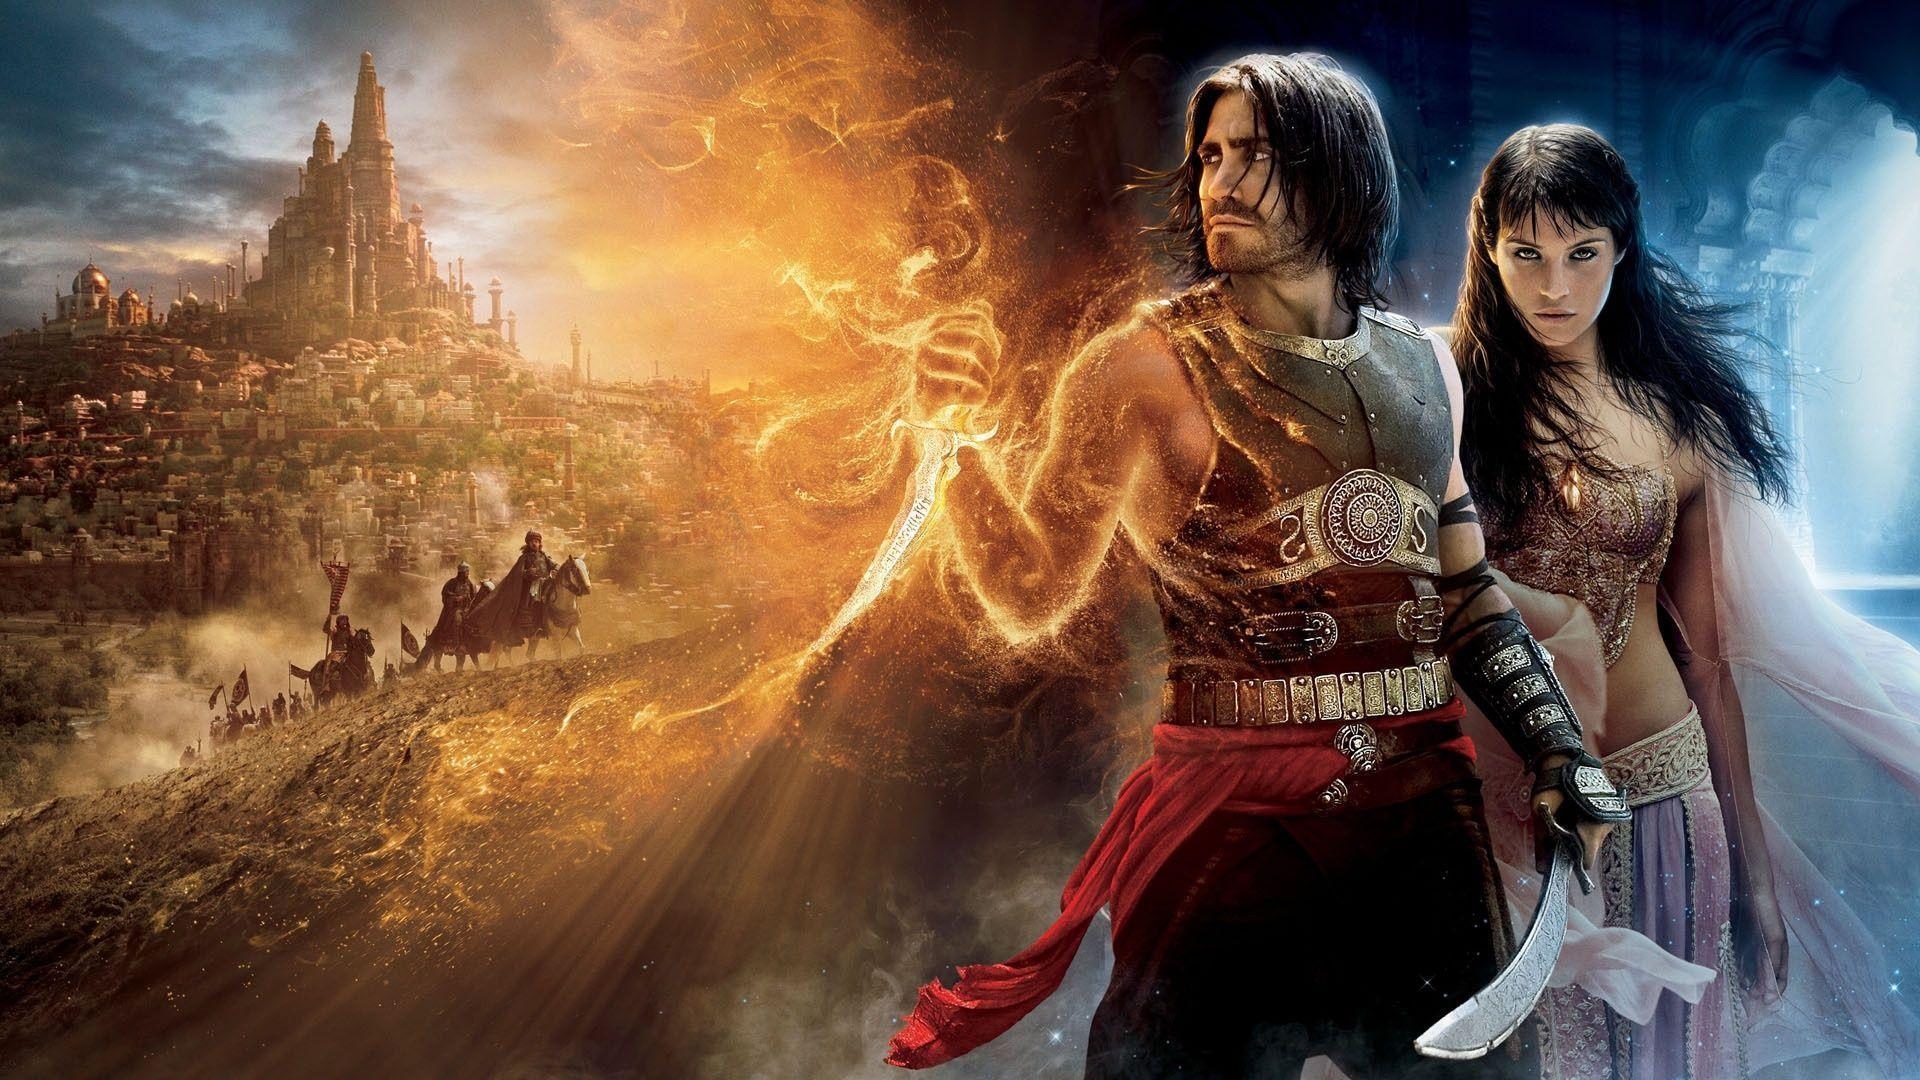 Prince Of Persia HD Wallpapers - Wallpaper Cave |Prince Of Persia Movie Wallpapers